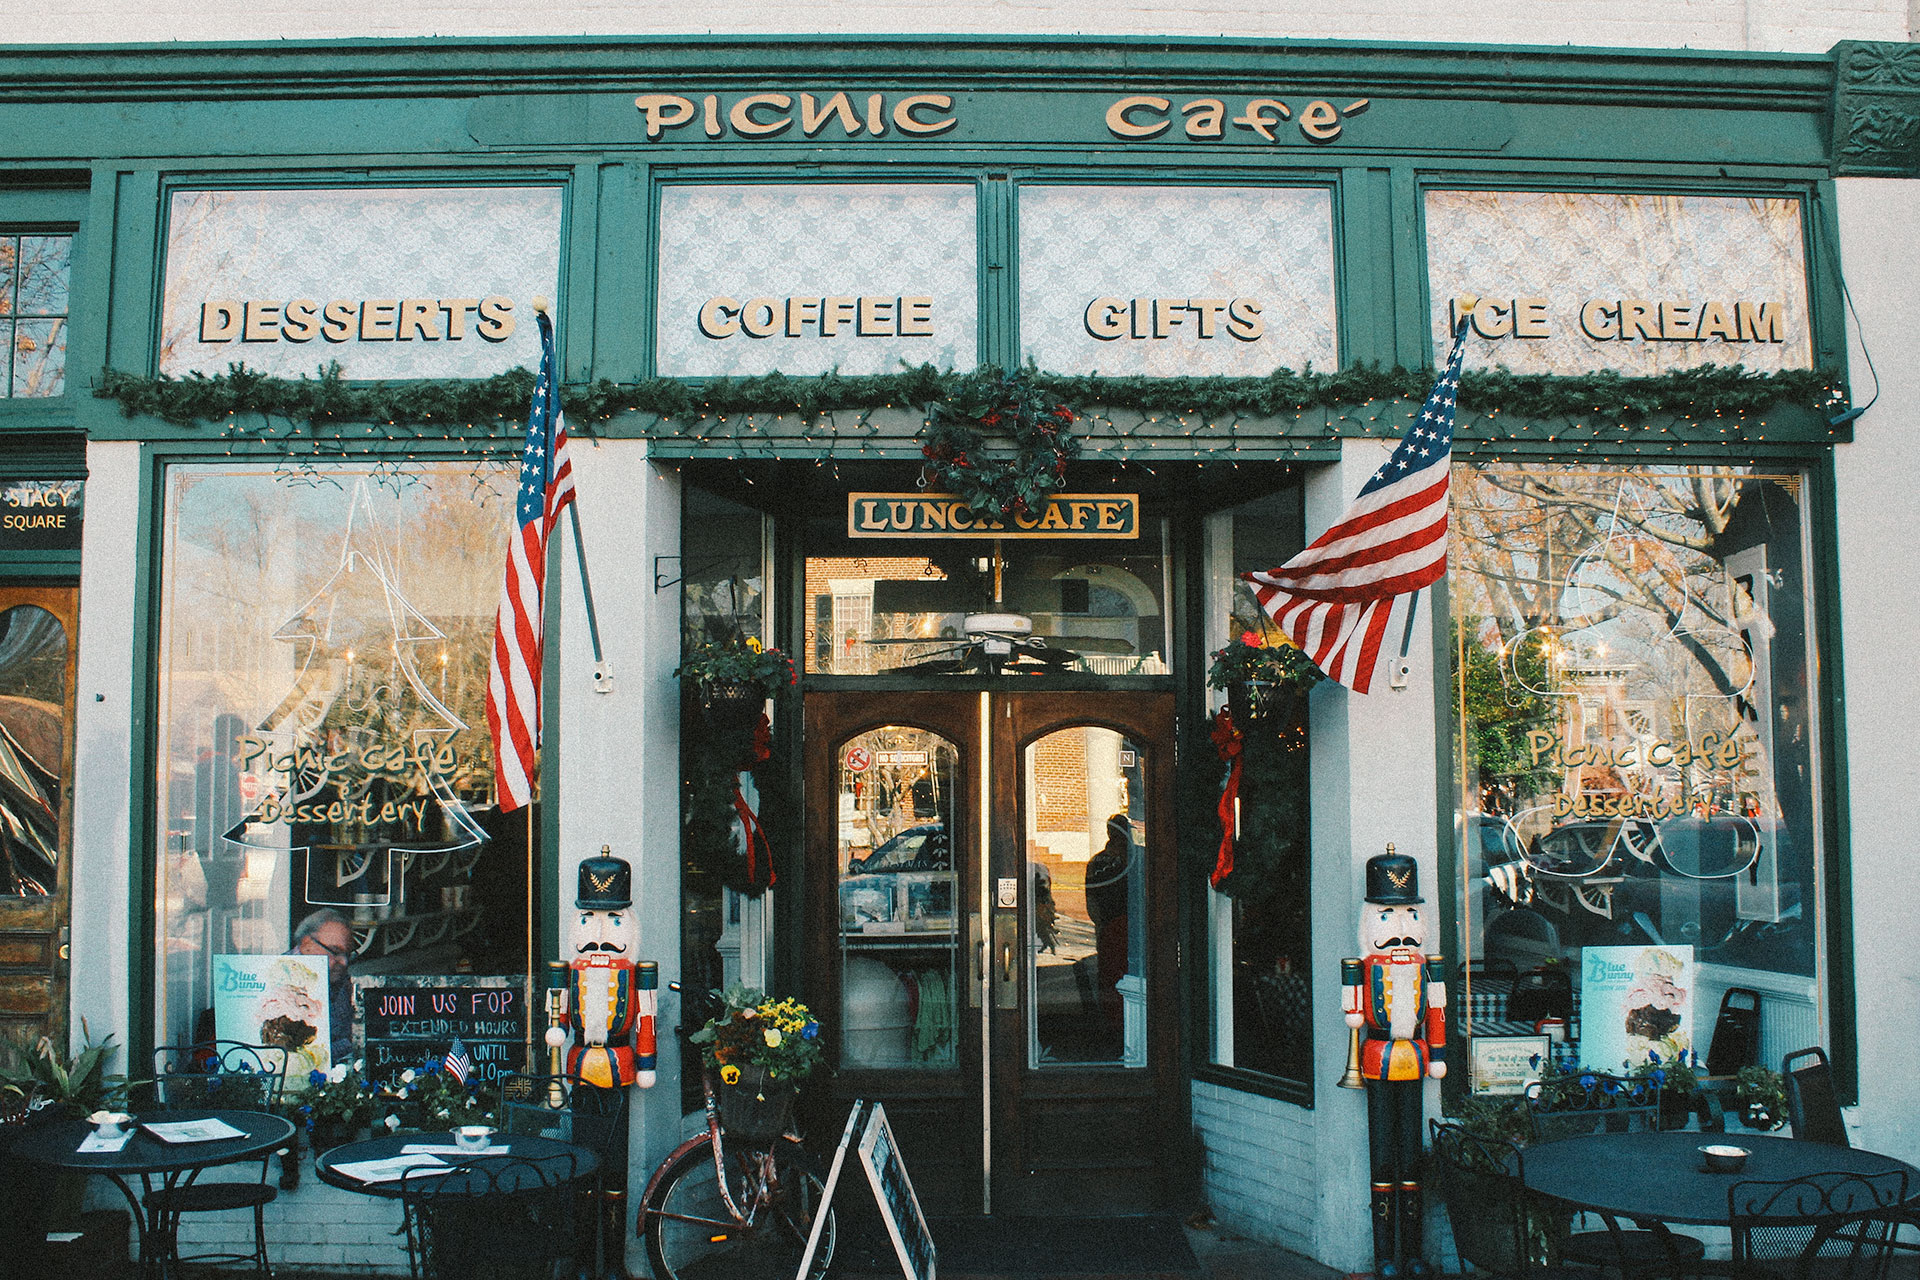 Warm and Americanized Atmosphere at the entrance of the Picnic Cafe